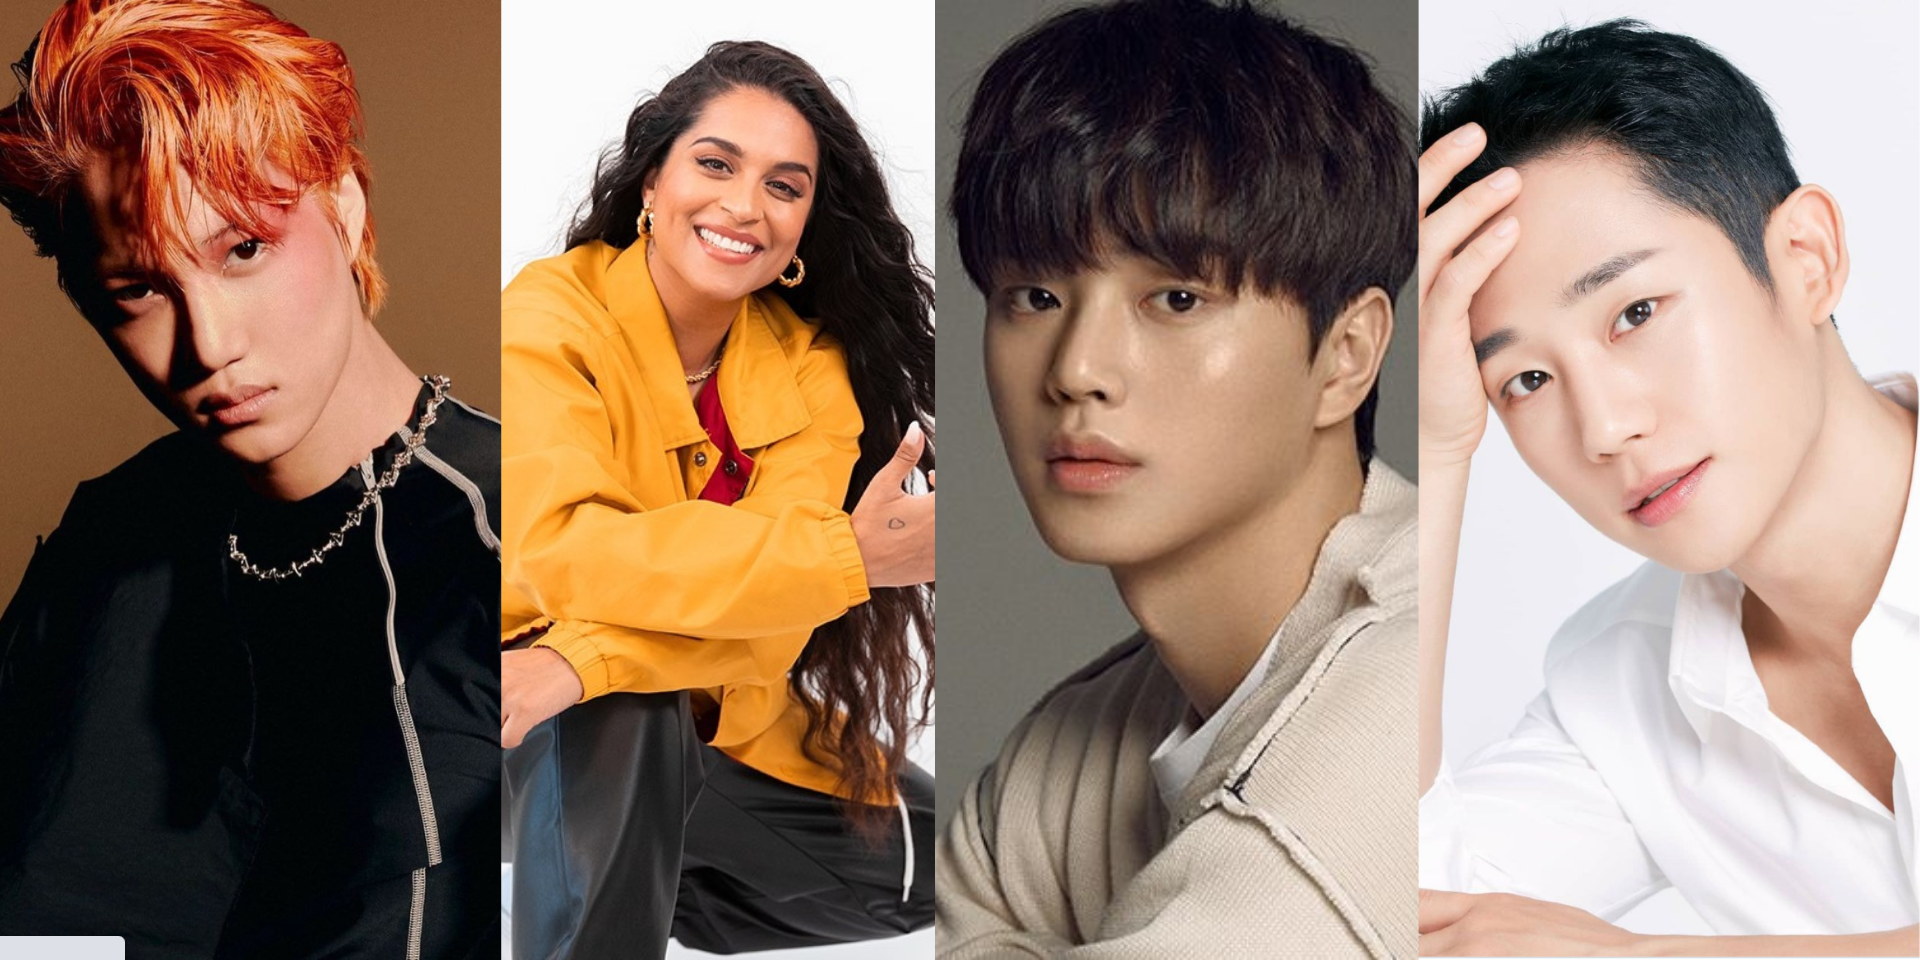 Netflix to hold global fan event 'TUDUM' featuring EXO's Kai, Song Kang, Jung Hae In, Lilly Singh and more